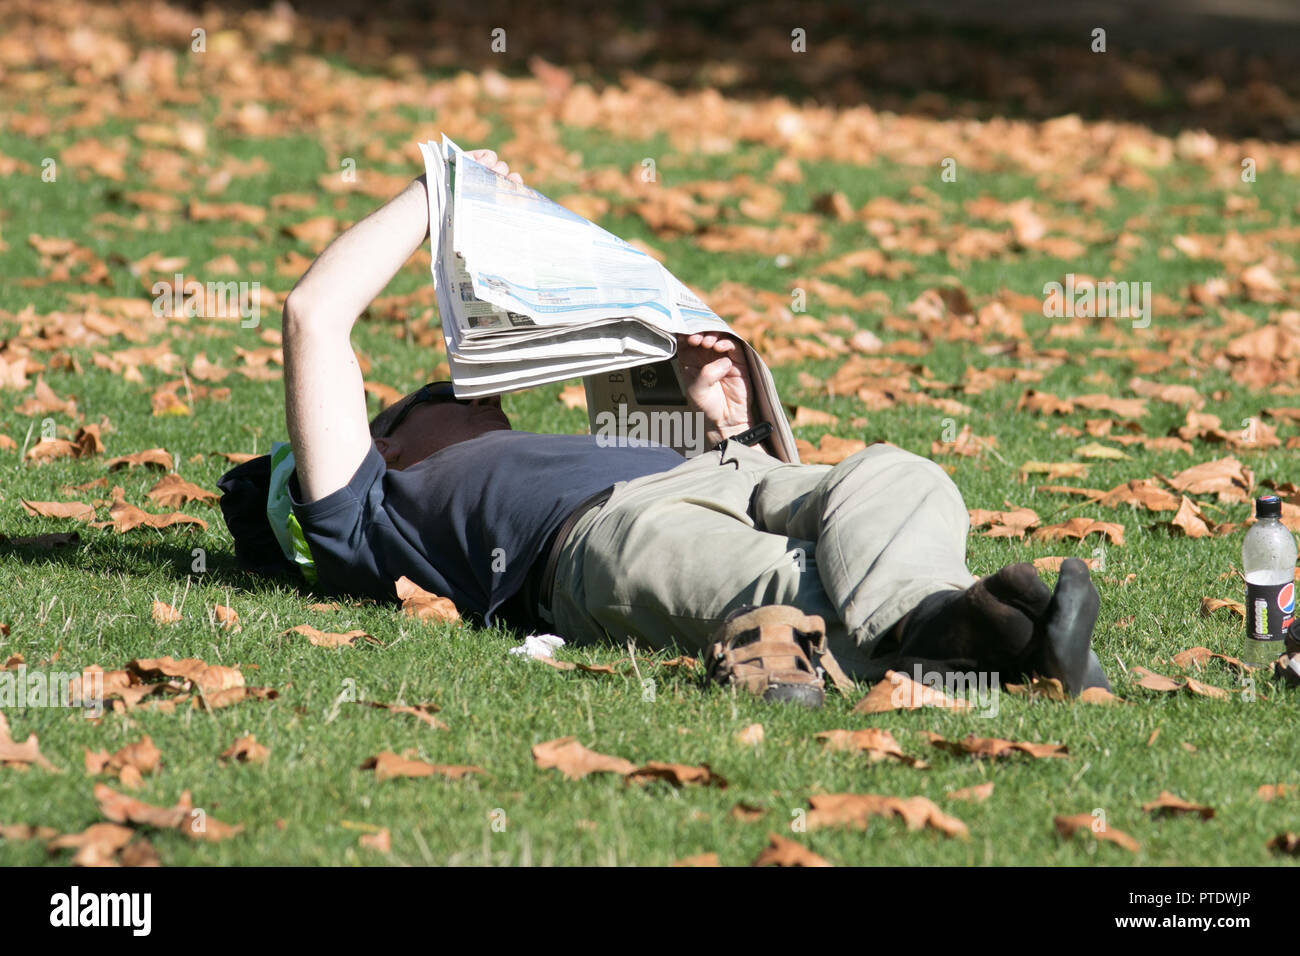 London UK. 9th Ocrober 2018.a man reading a newspaper on the grass  in the afternoon  sunshine in Saint James's Park covered in fallen leaves on a warm autumn day as October is forecast to be the hottest month in Seven years as the Indian summer returns Credit: amer ghazzal/Alamy Live News - Stock Image